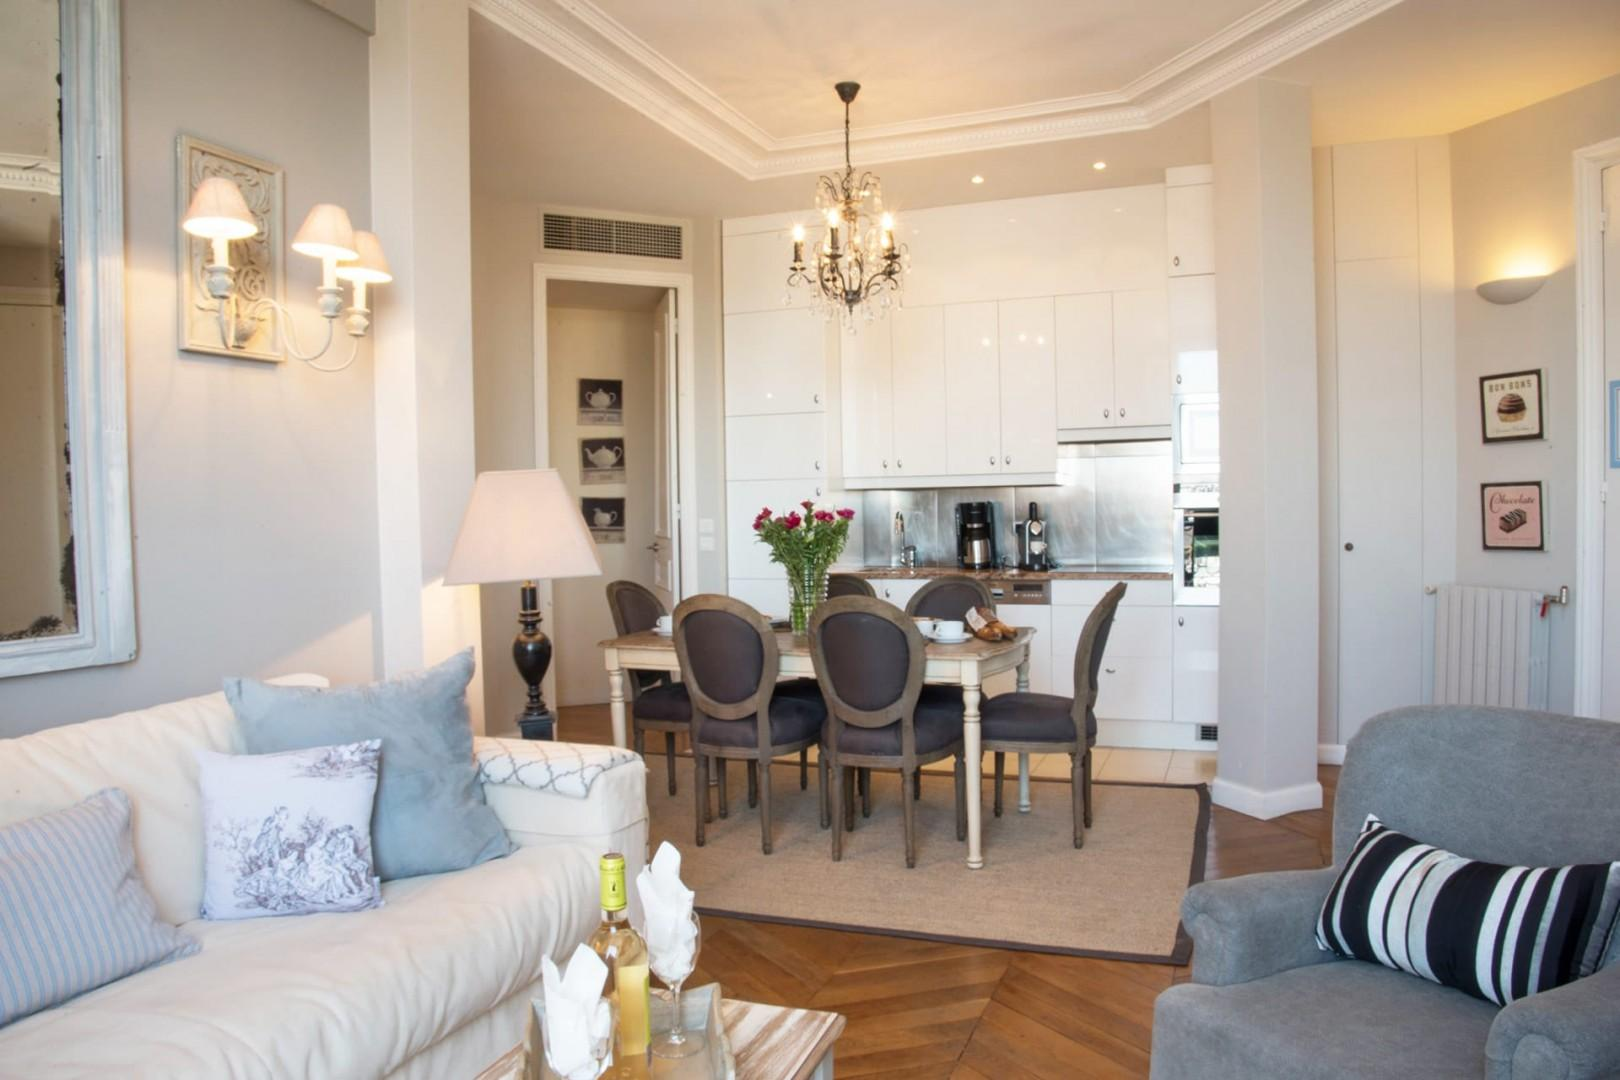 The open-plan living and dining area is perfect for families.